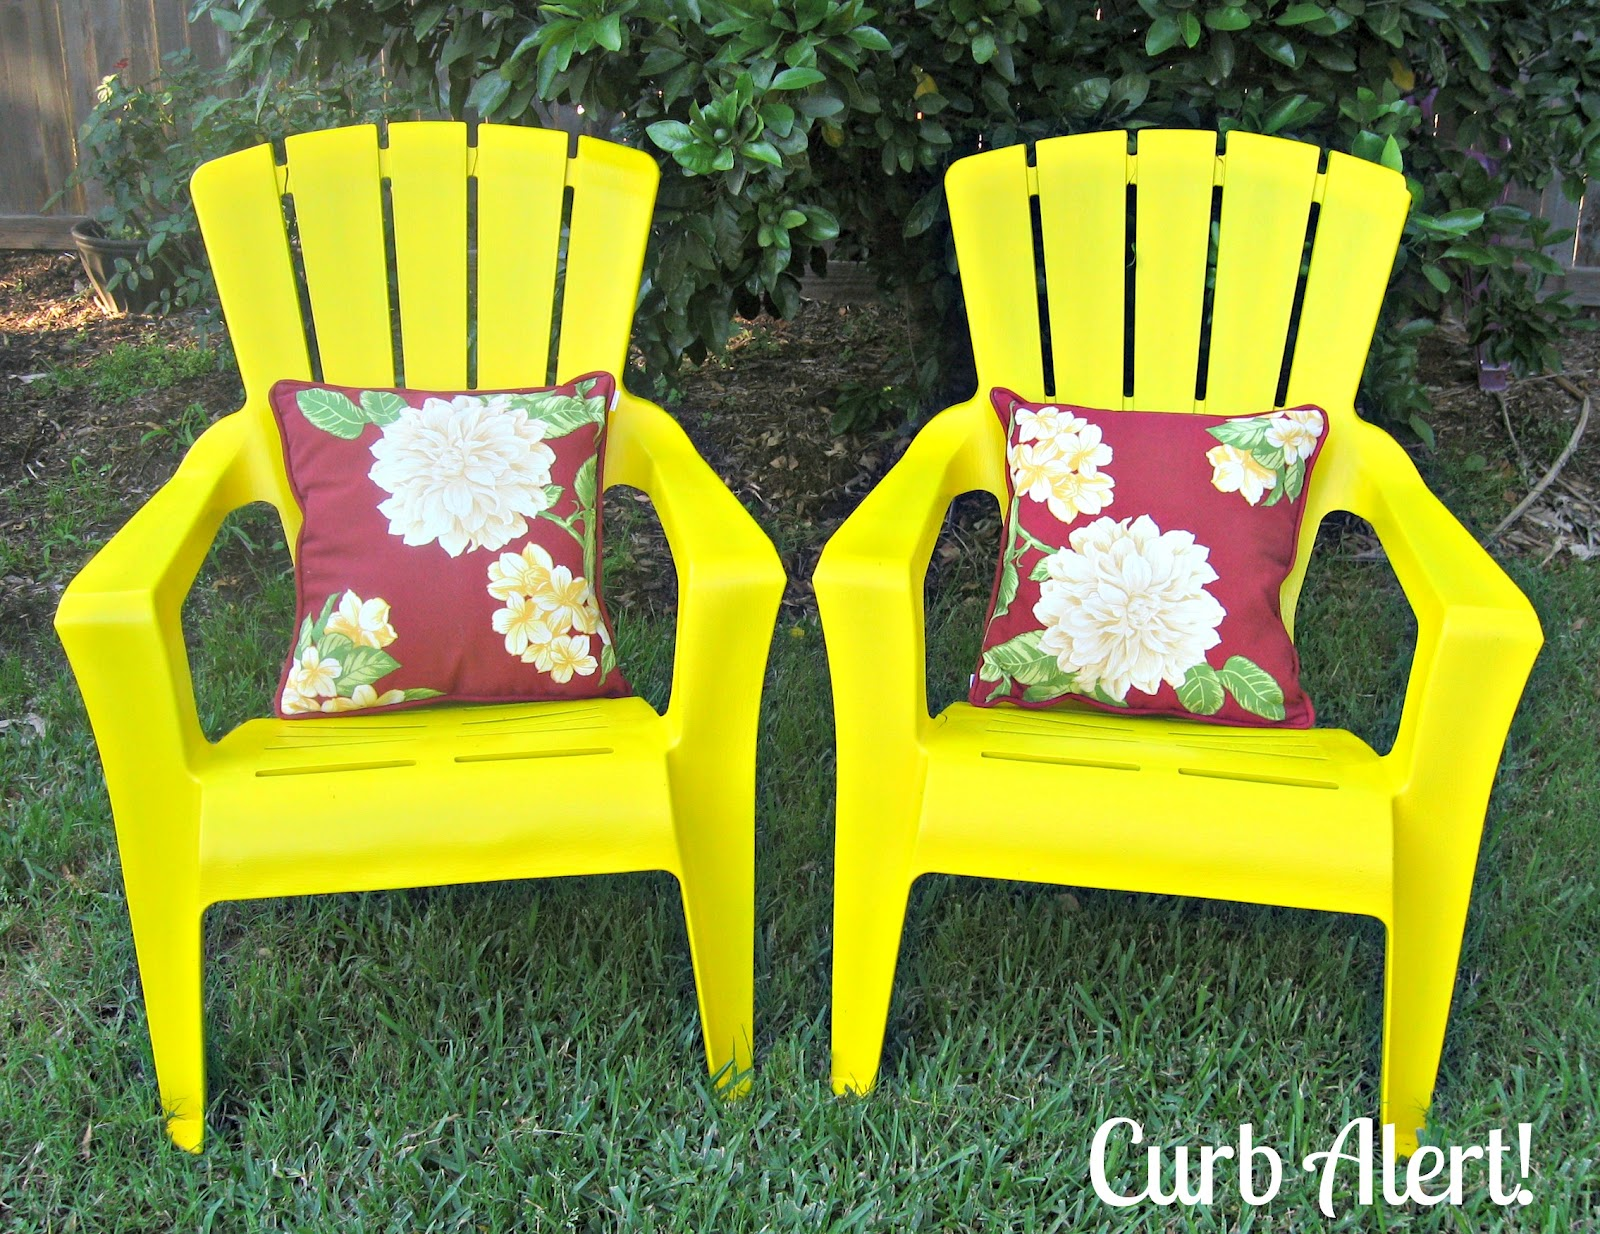 curb alert quick 15 minute update outdoor patio chairs. Black Bedroom Furniture Sets. Home Design Ideas